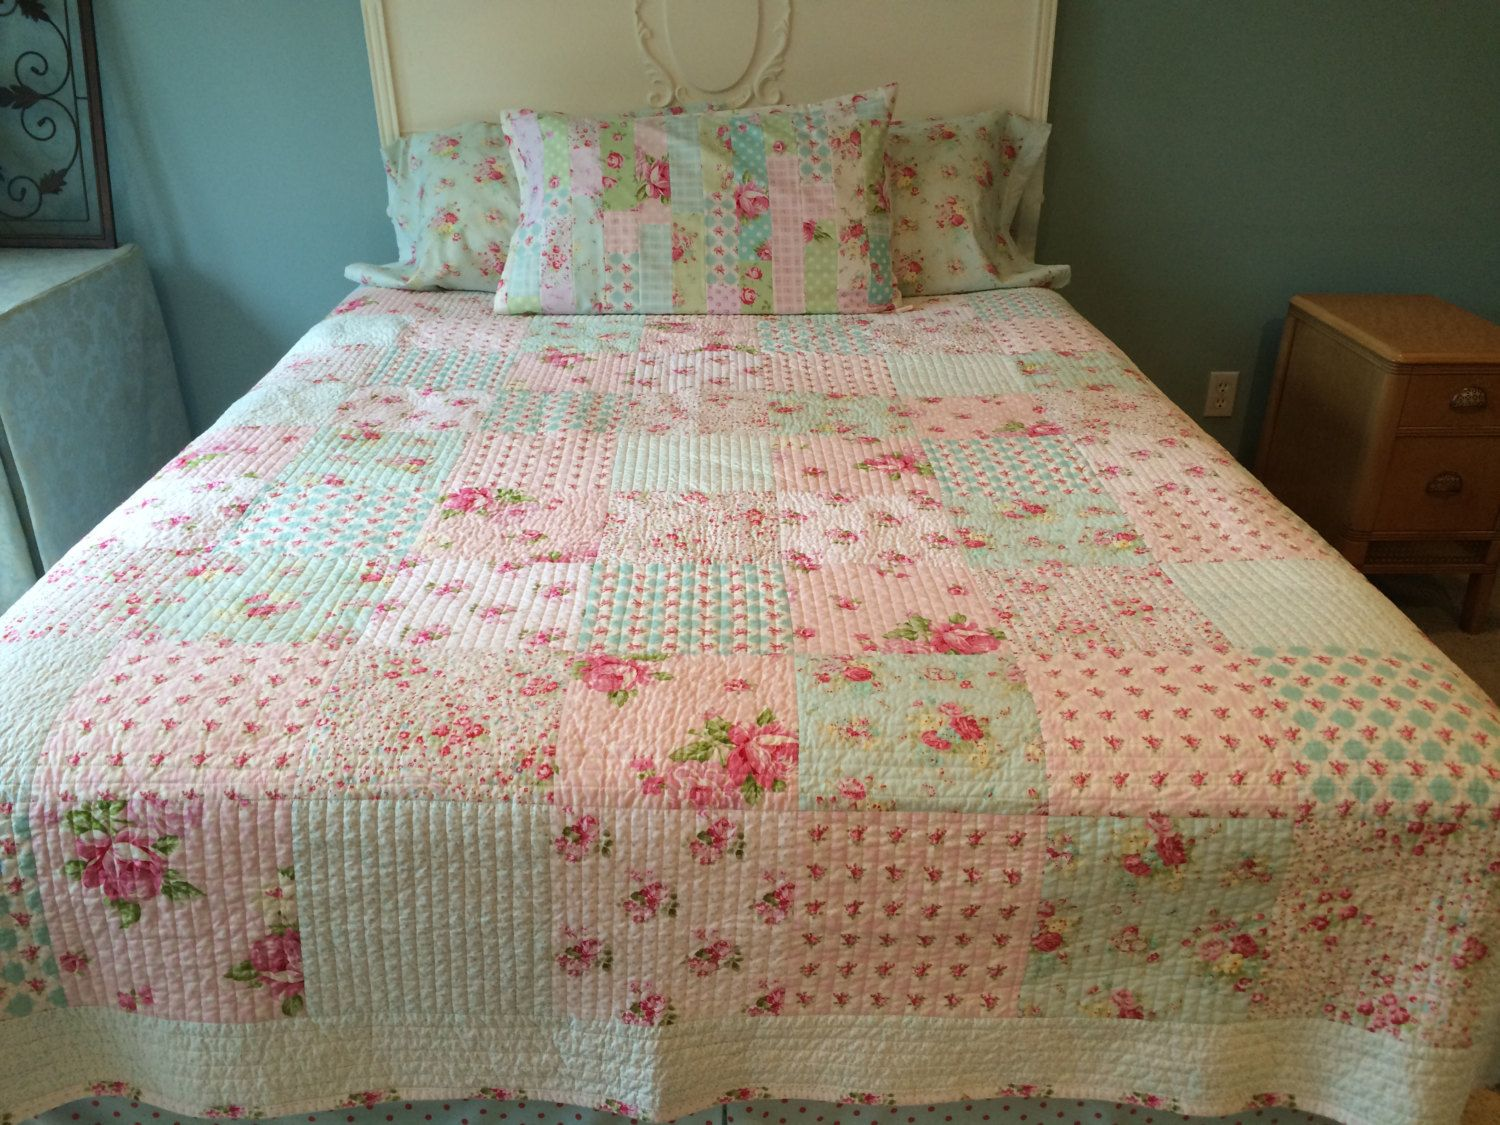 Patchwork bed sheets patterns - Shabby Chic Quilt Tanya Whelan Quilt Floral Patchwork Quilt Shabby Chic Bed Quilt